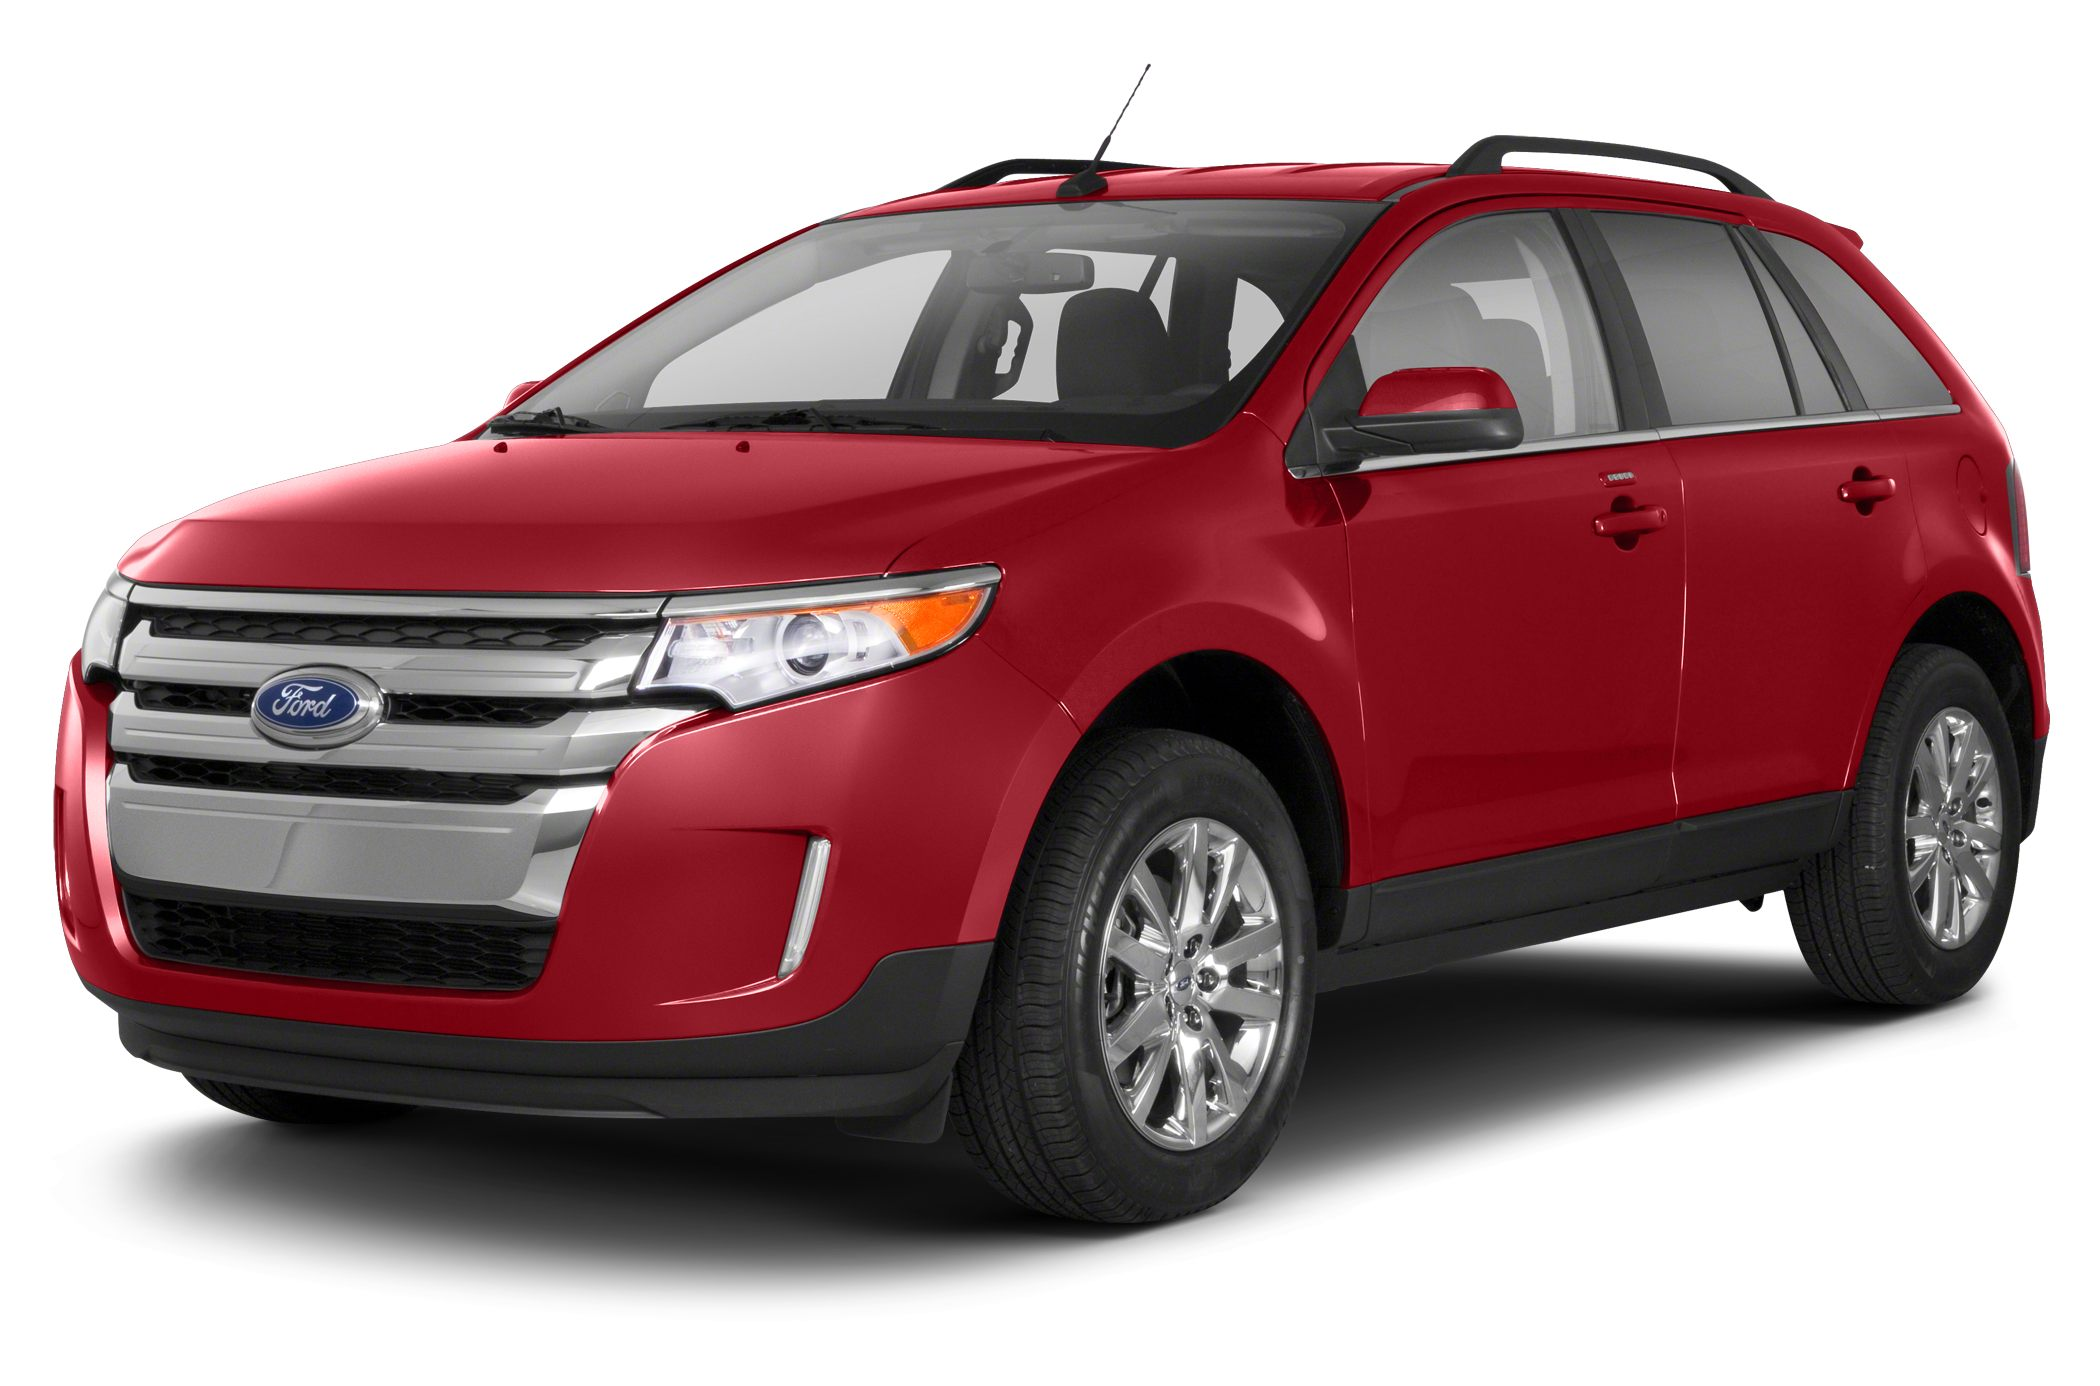 2013 Ford Edge SE SUV for sale in Nashville for $19,979 with 3,262 miles